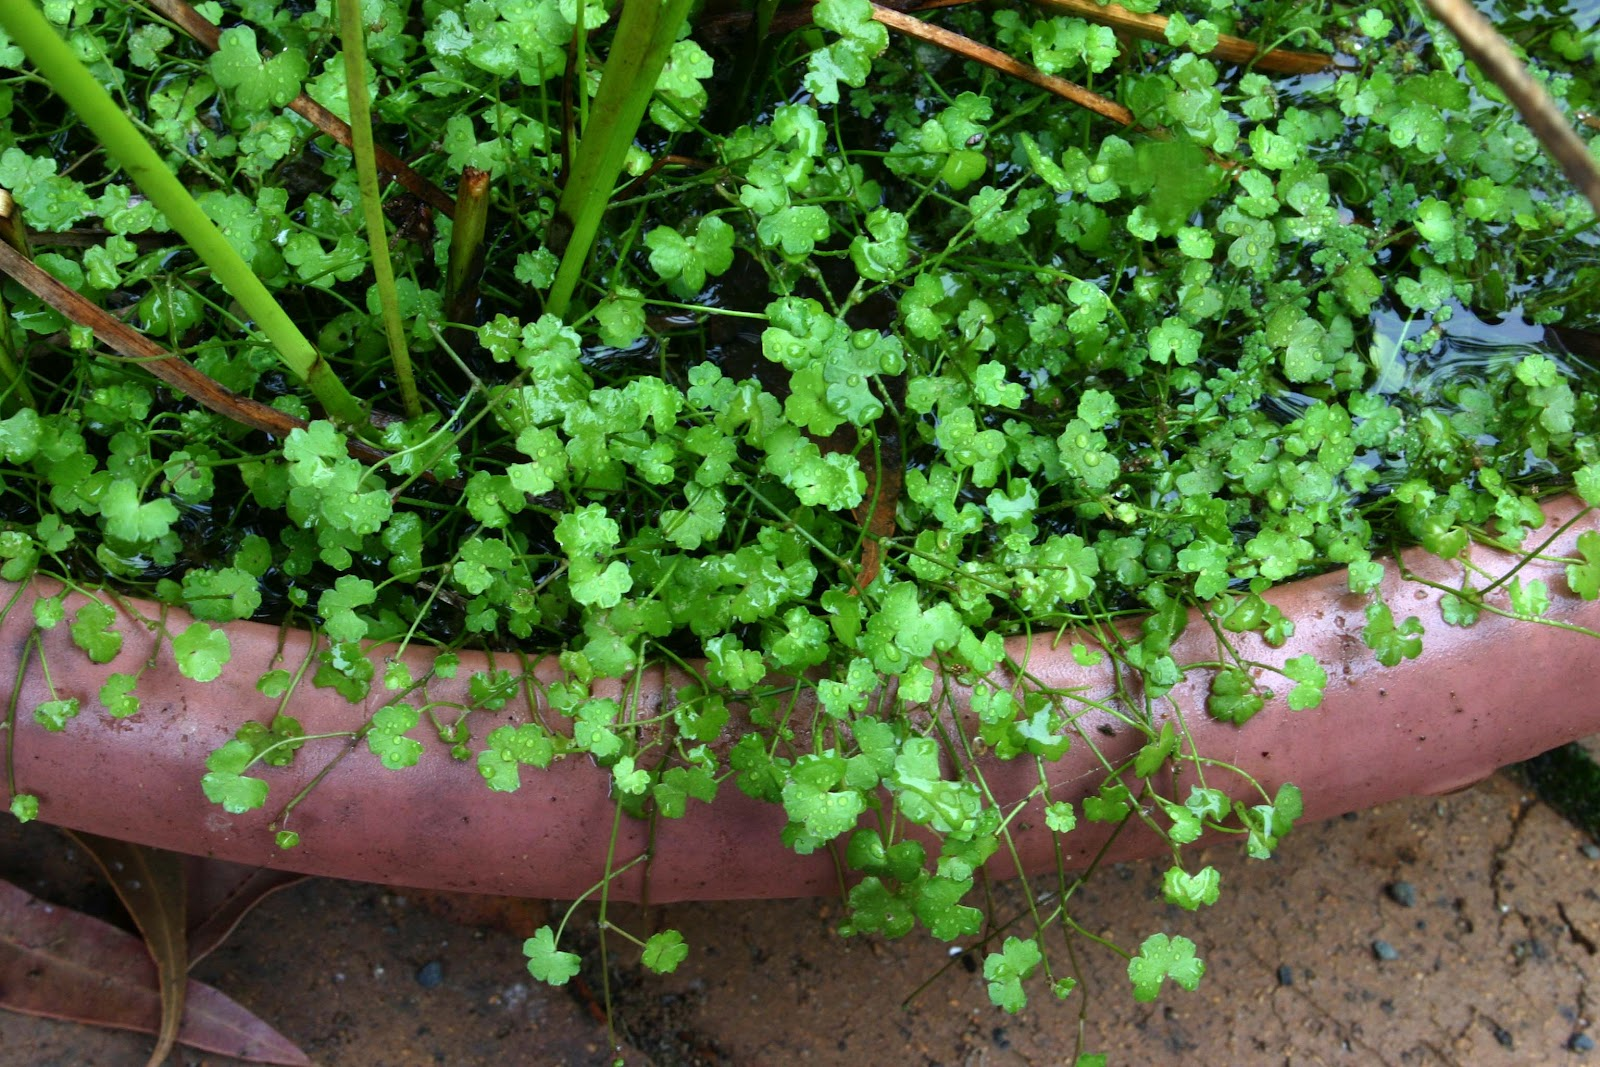 100 Little Plants Texture Background Dry Cracked